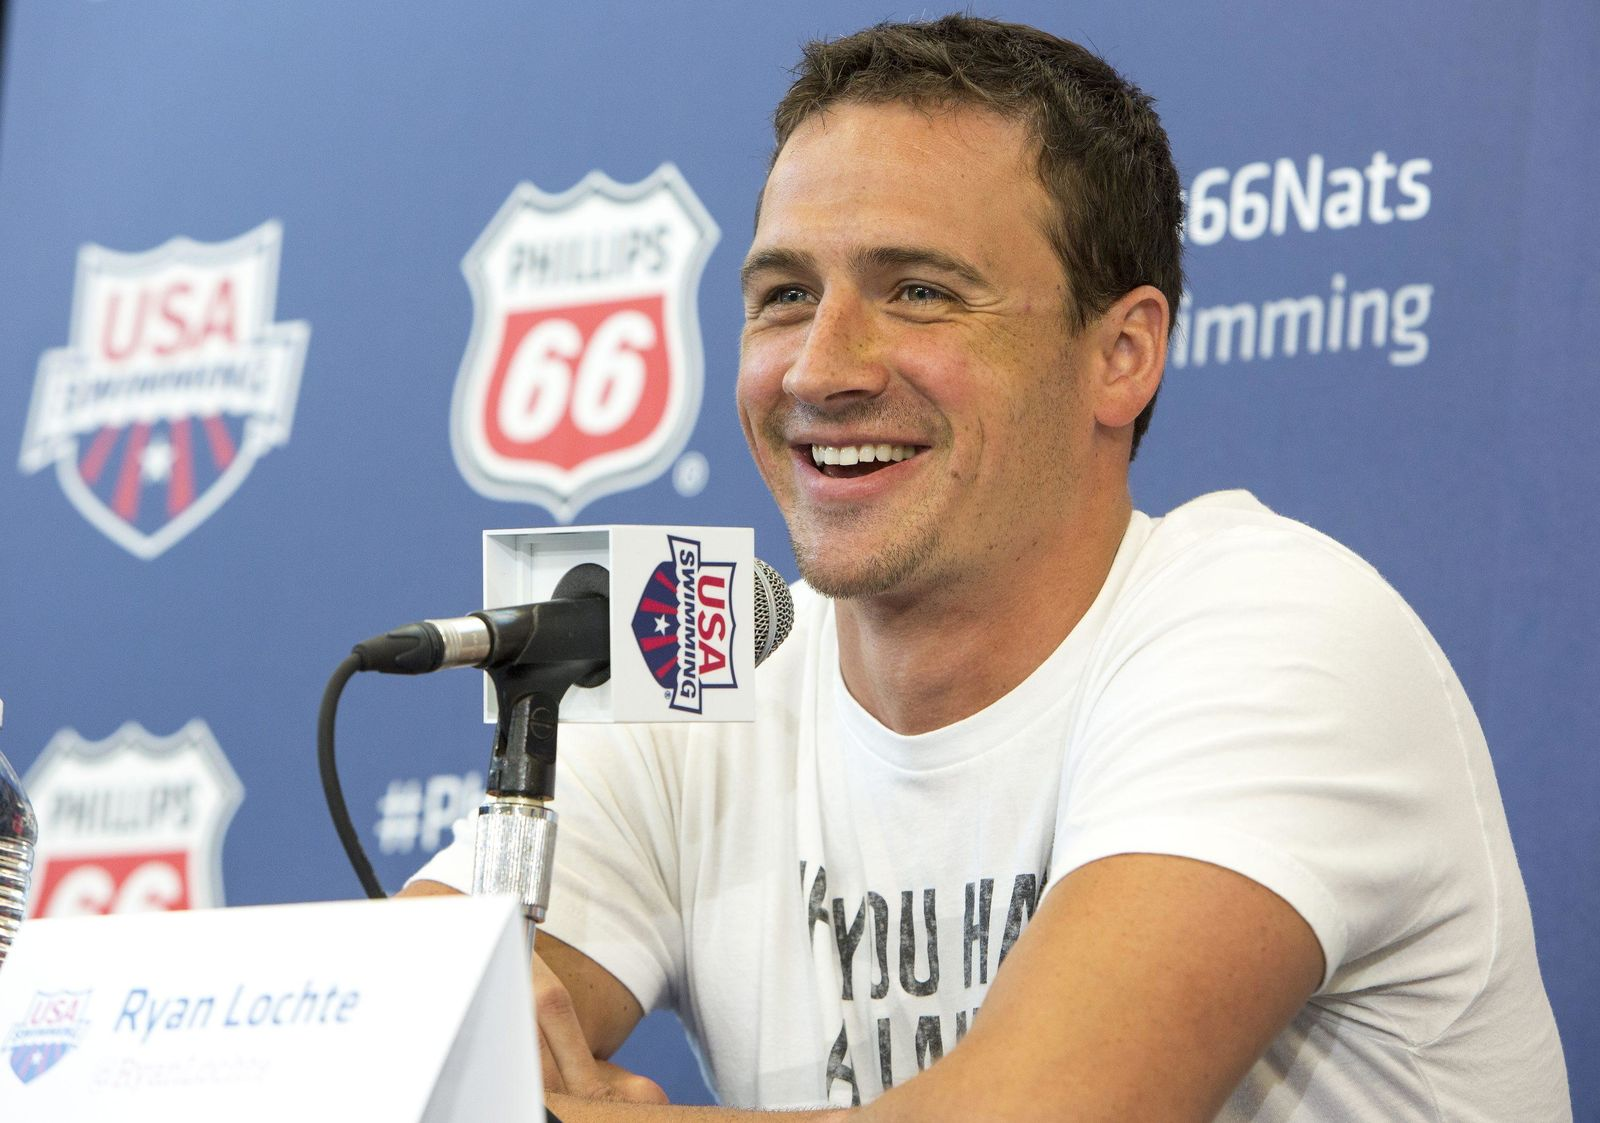 Ryan Lochte smiles as he takes questions from the media at the U.S. swimming nationals news conference in Irvine, Calif., on Tuesday. AP PHOTO